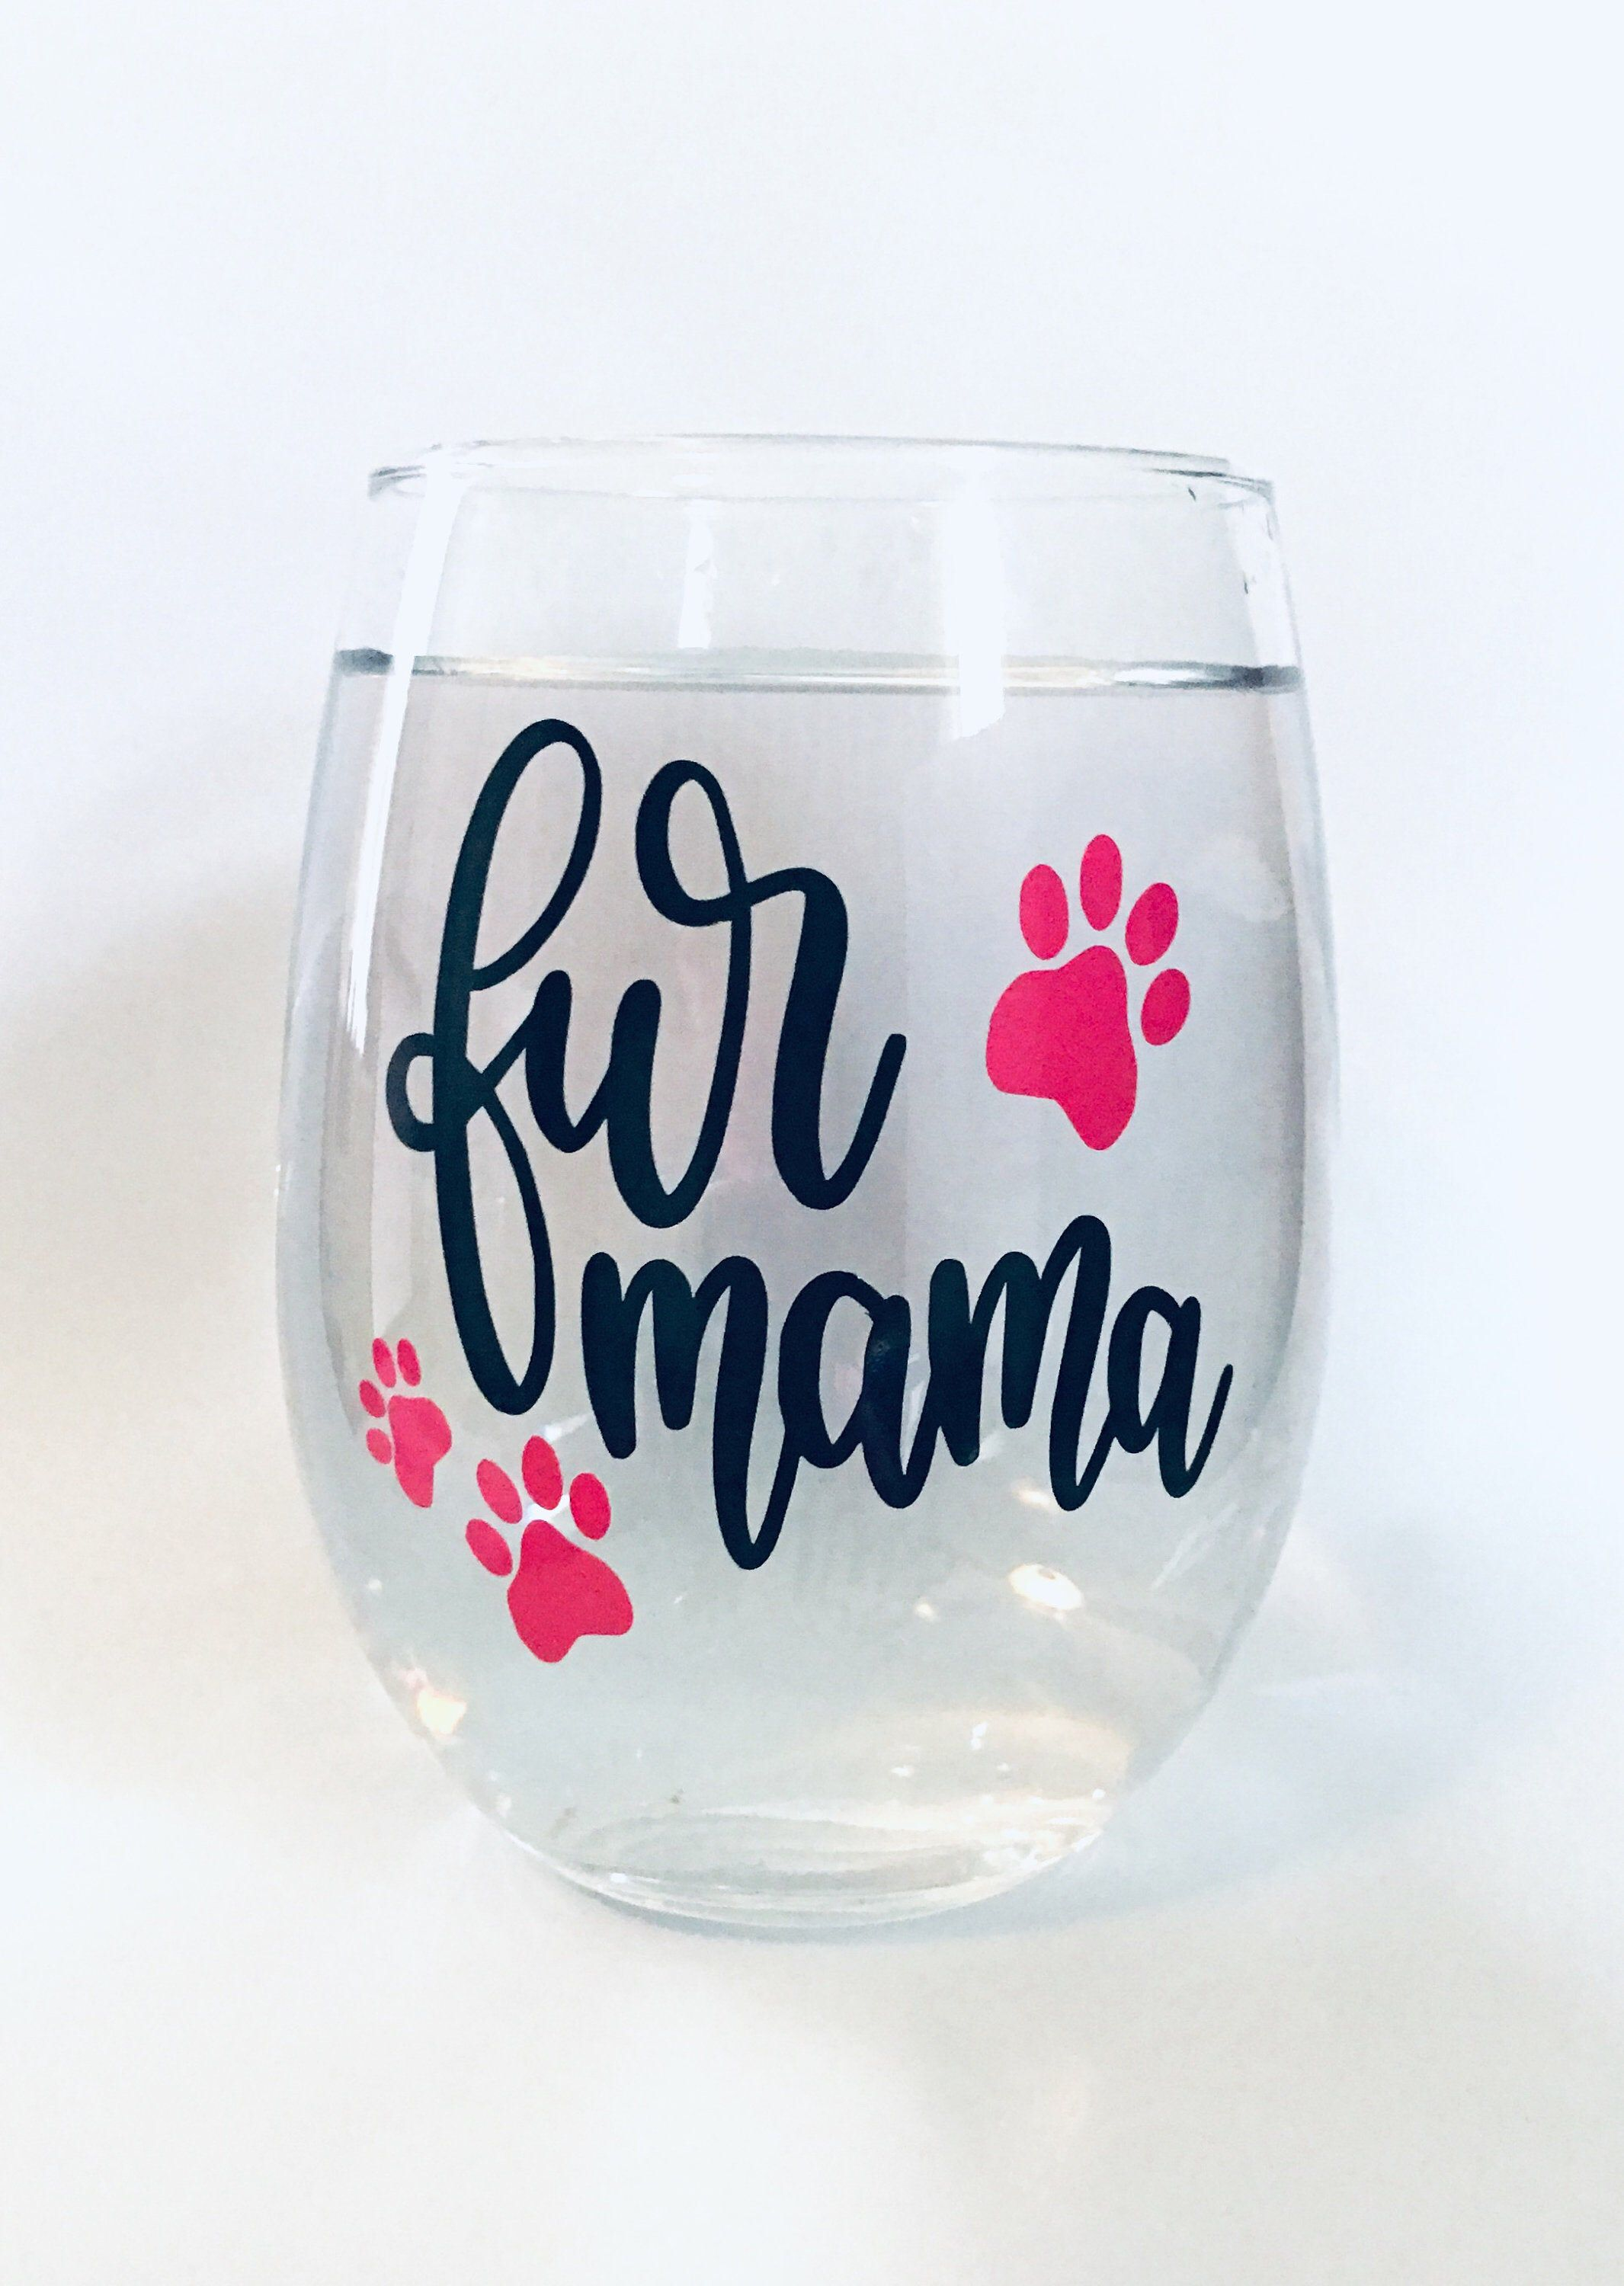 Fur Mama Wine Glass, Dog Mom Wine Glass, Wine glass for dog lovers, Gift for her, Wine , Mothers Day Gift